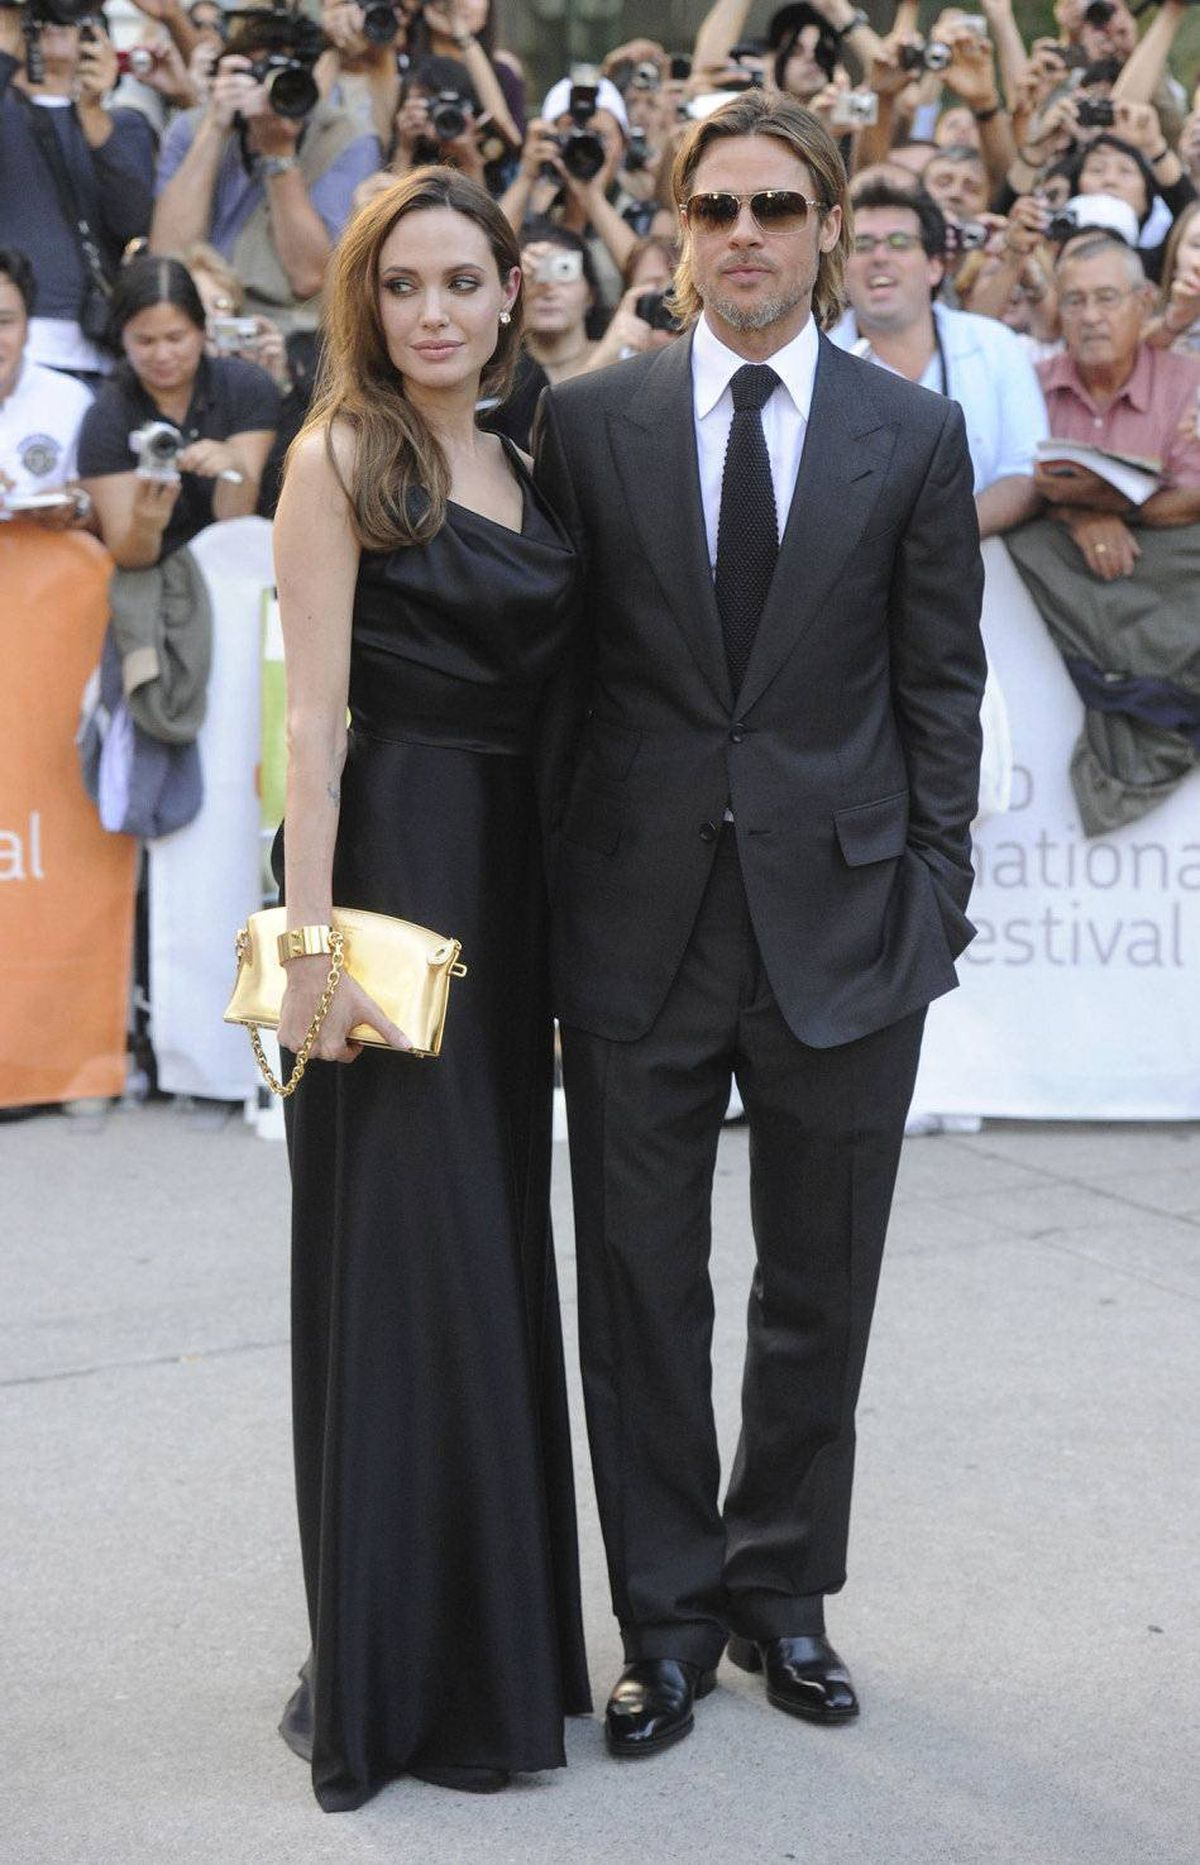 """TORONTO, ON - SEPTEMBER 09: Actress Angelina Jolie (L) and actor/producer Brad Pitt arrive at """"Moneyball"""" Premiere at Roy Thomson Hall during the 2011 Toronto International Film Festival on September 9, 2011 in Toronto, Canada."""